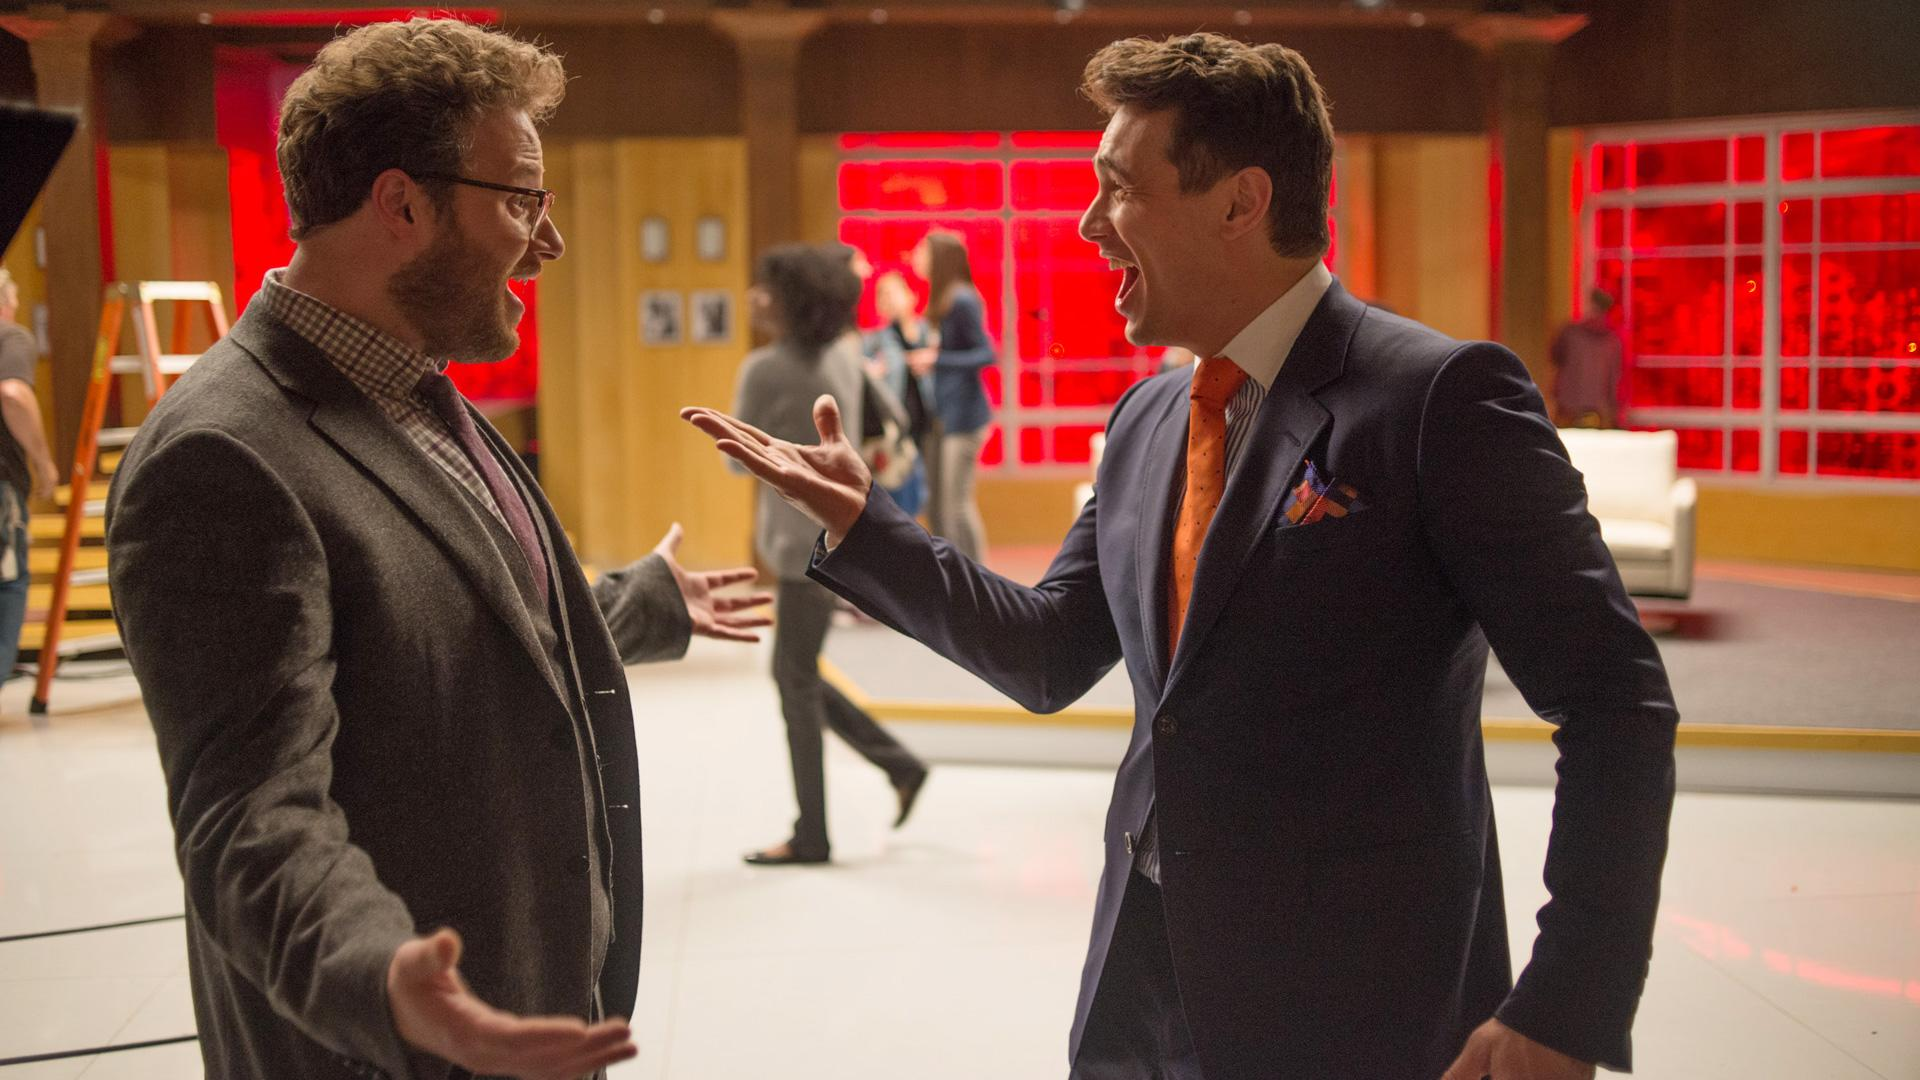 'The Interview' New York Premiere Canceled